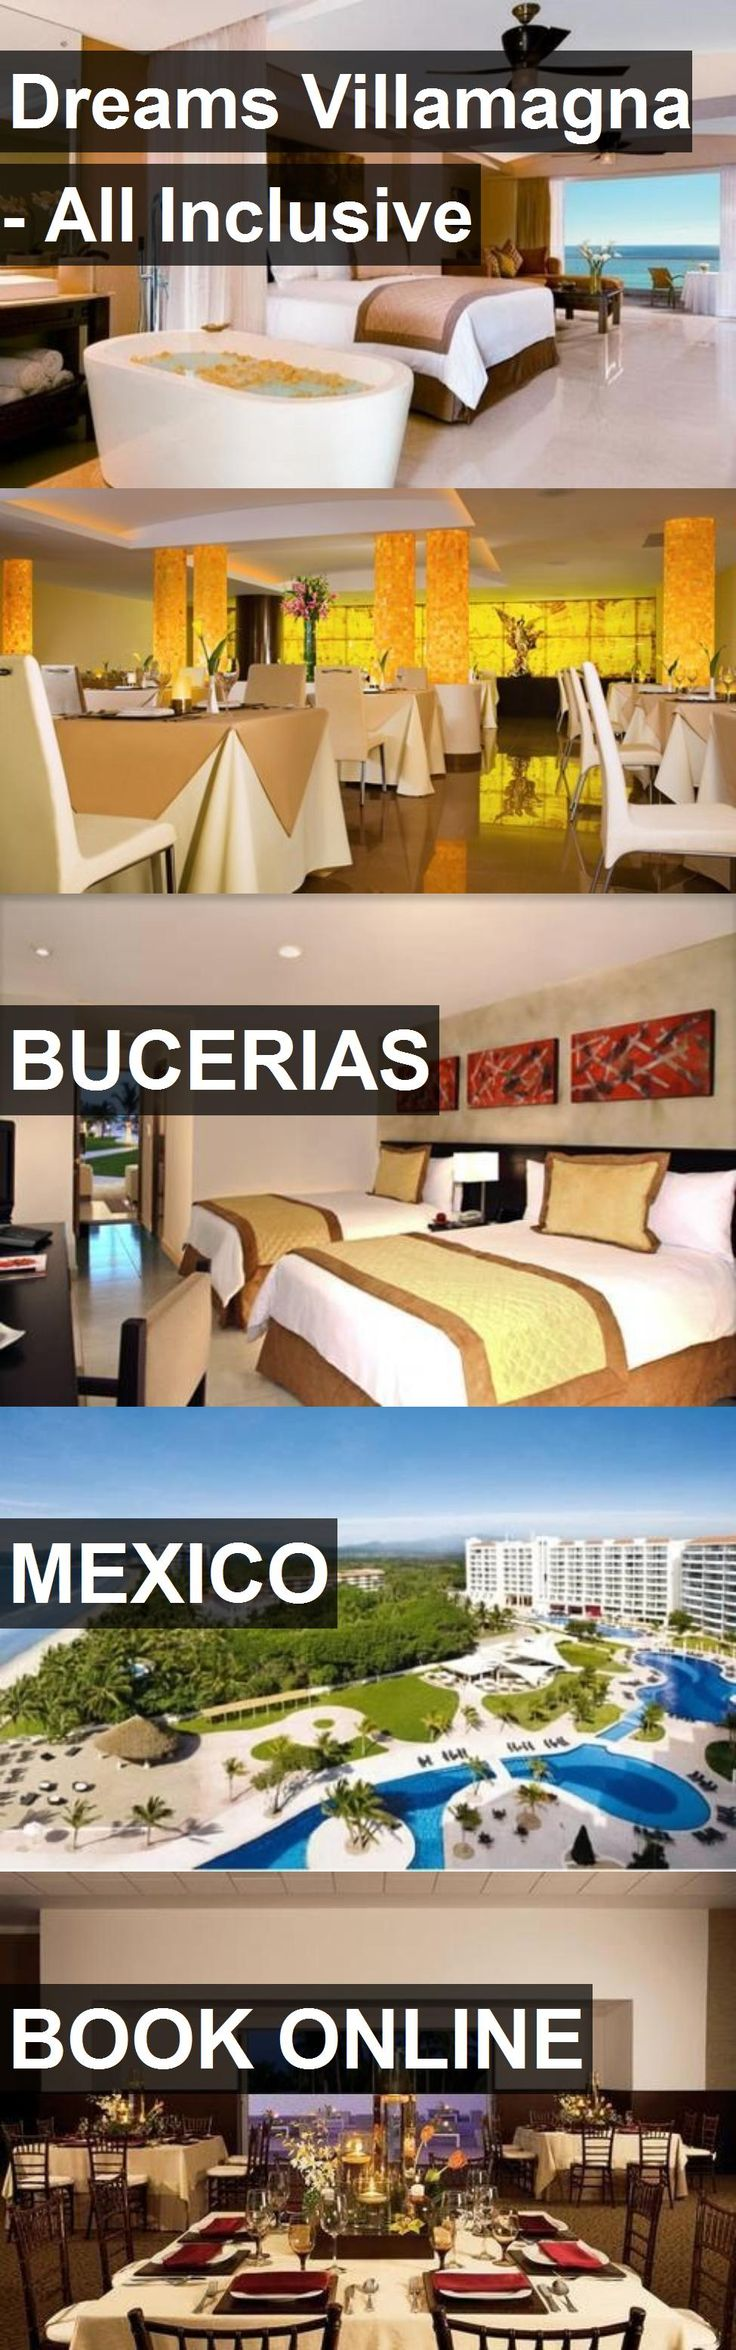 Hotel Dreams Villamagna - All Inclusive in Bucerias, Mexico. For more information, photos, reviews and best prices please follow the link. #Mexico #Bucerias #travel #vacation #hotel